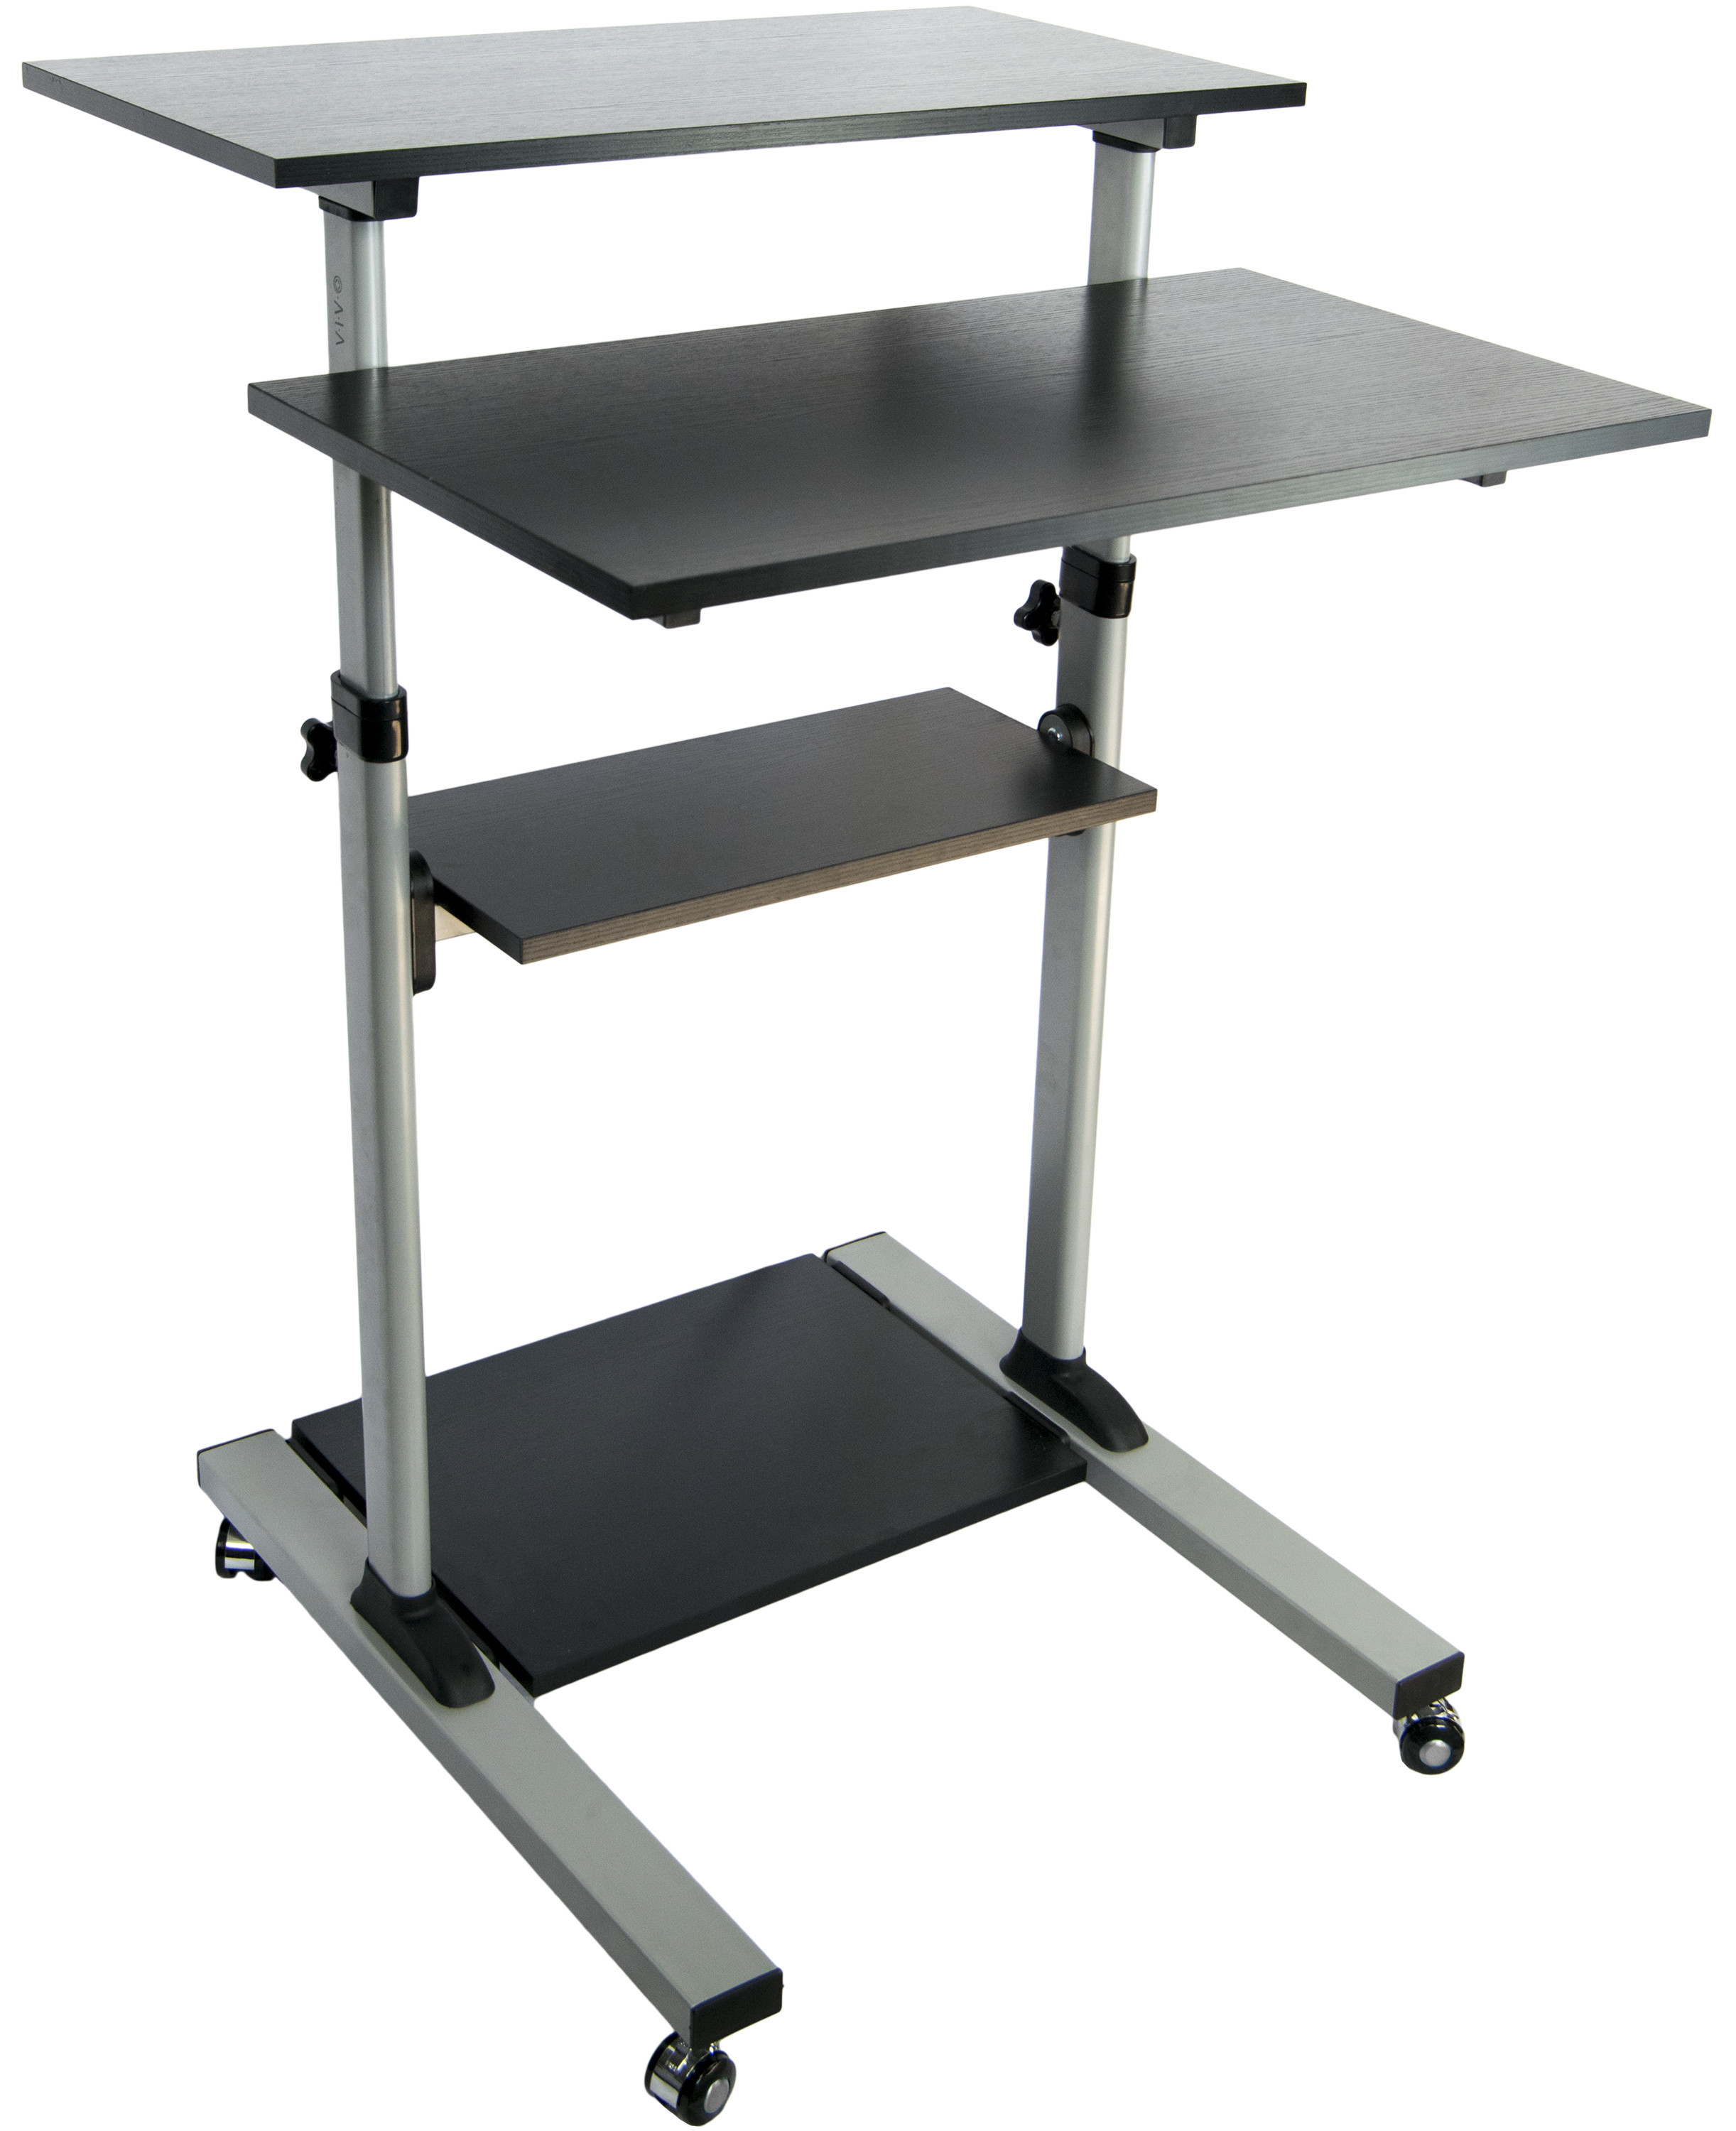 mobile height adjustable stand up desk computer work station presentation cart ebay. Black Bedroom Furniture Sets. Home Design Ideas